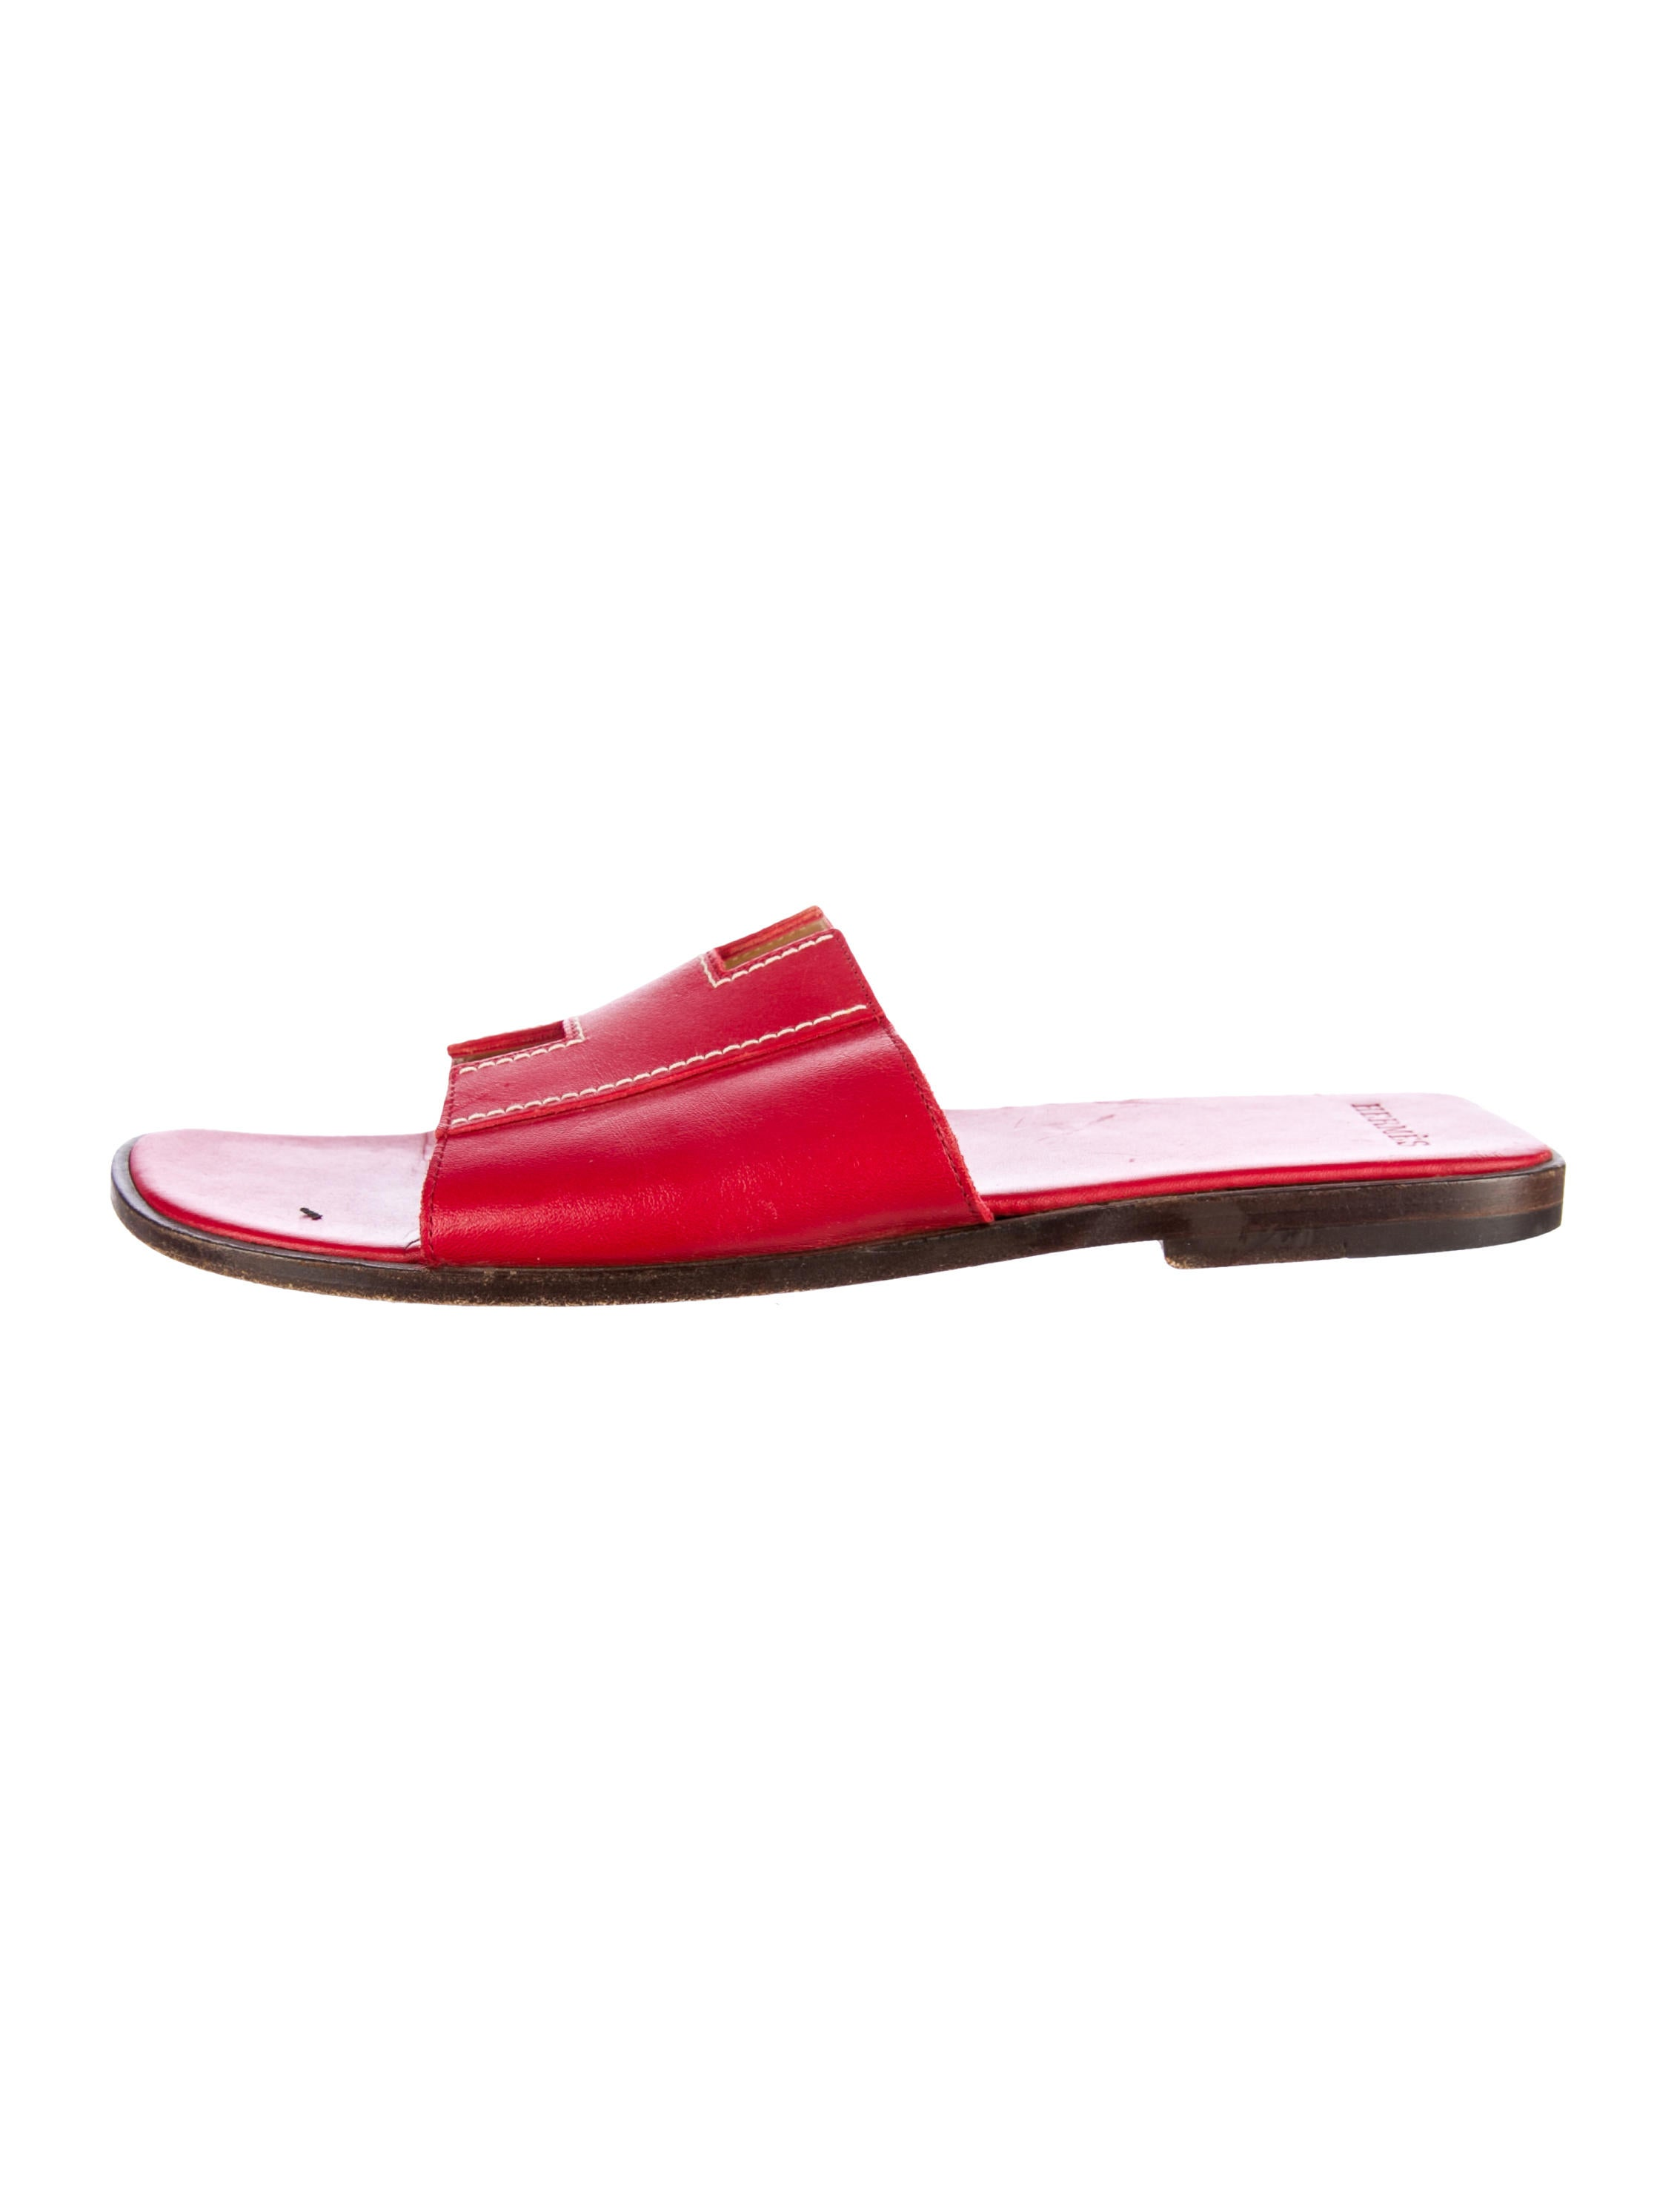 e221c6b3e7ea Hermès Oran Sandals - Shoes - HER47094